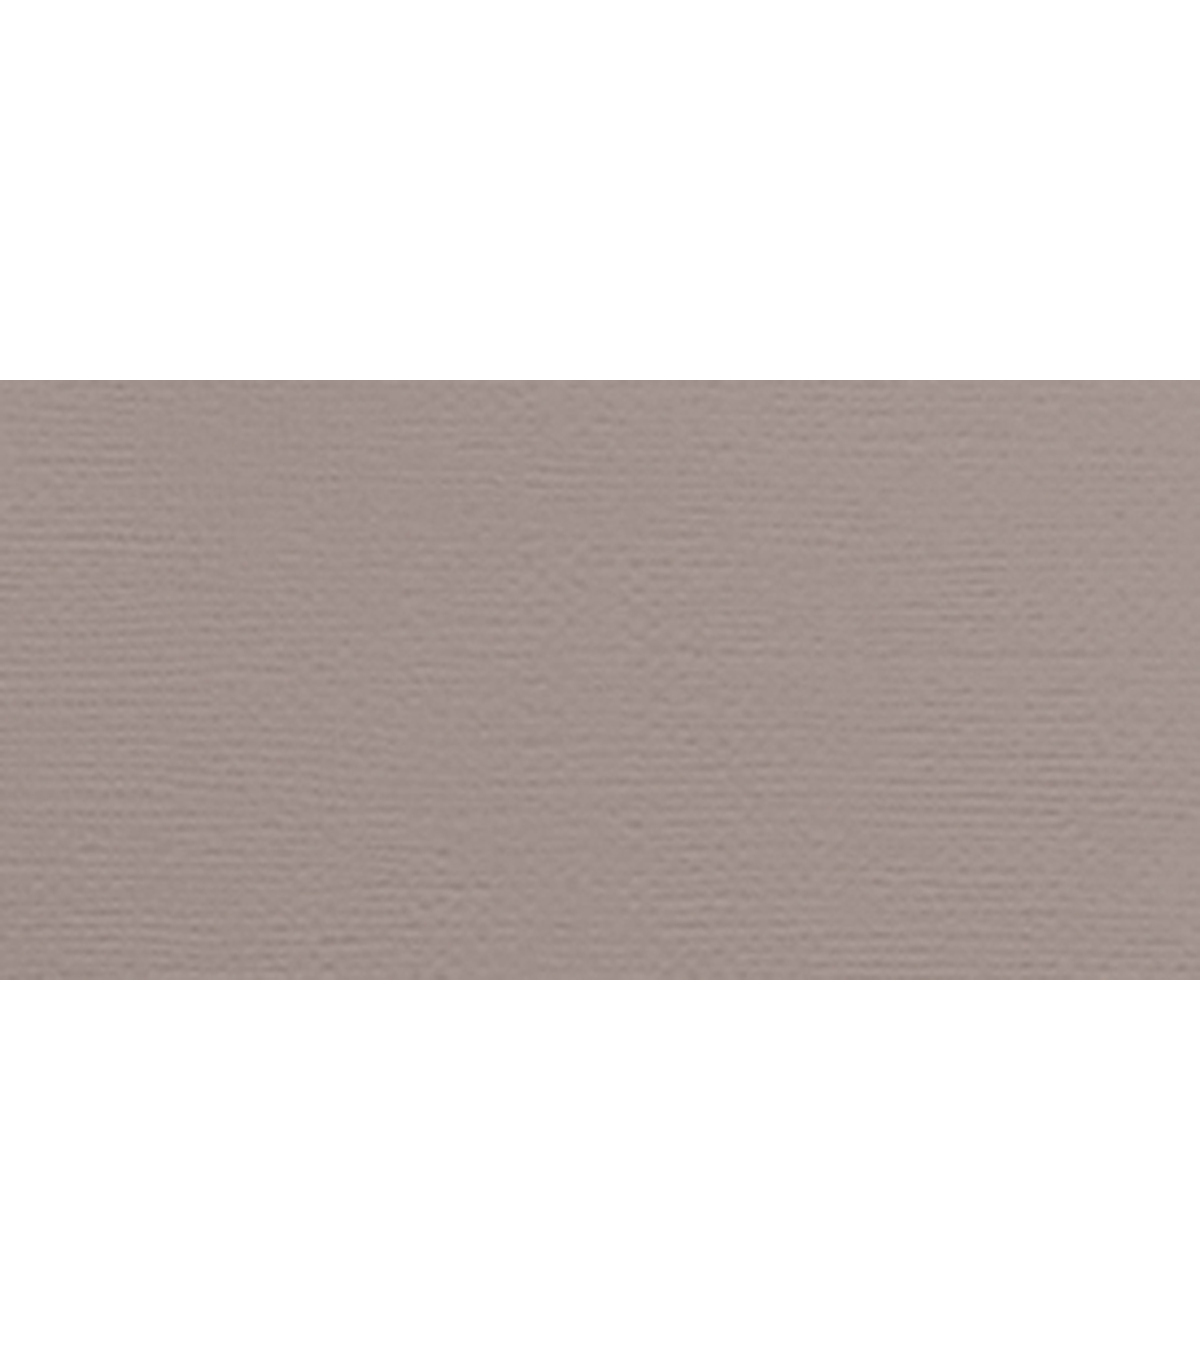 American Crafts Textured Cardstock 12\u0022X12\u0022-Nickel